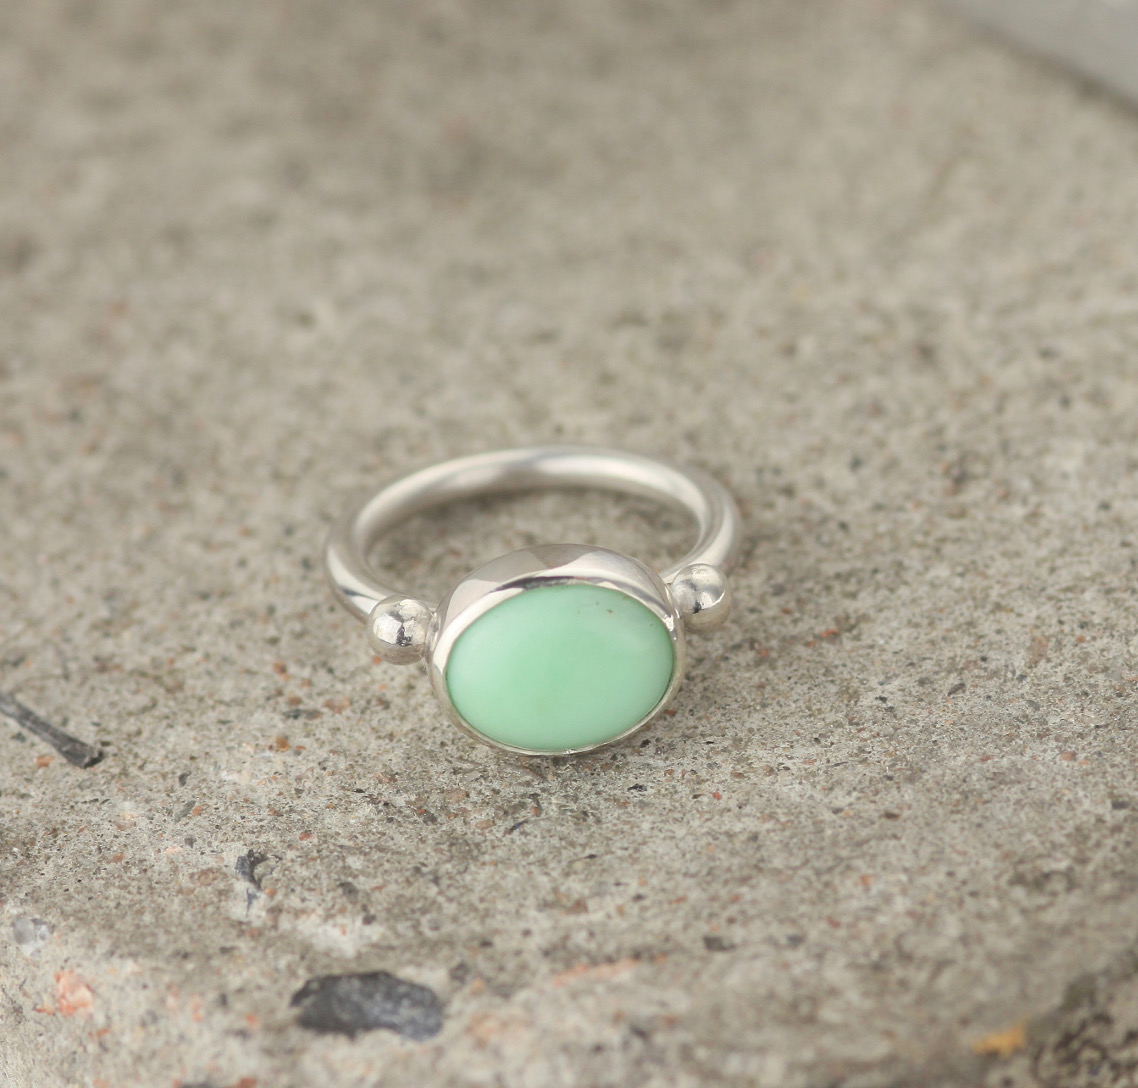 What gems would you love this ring made in?